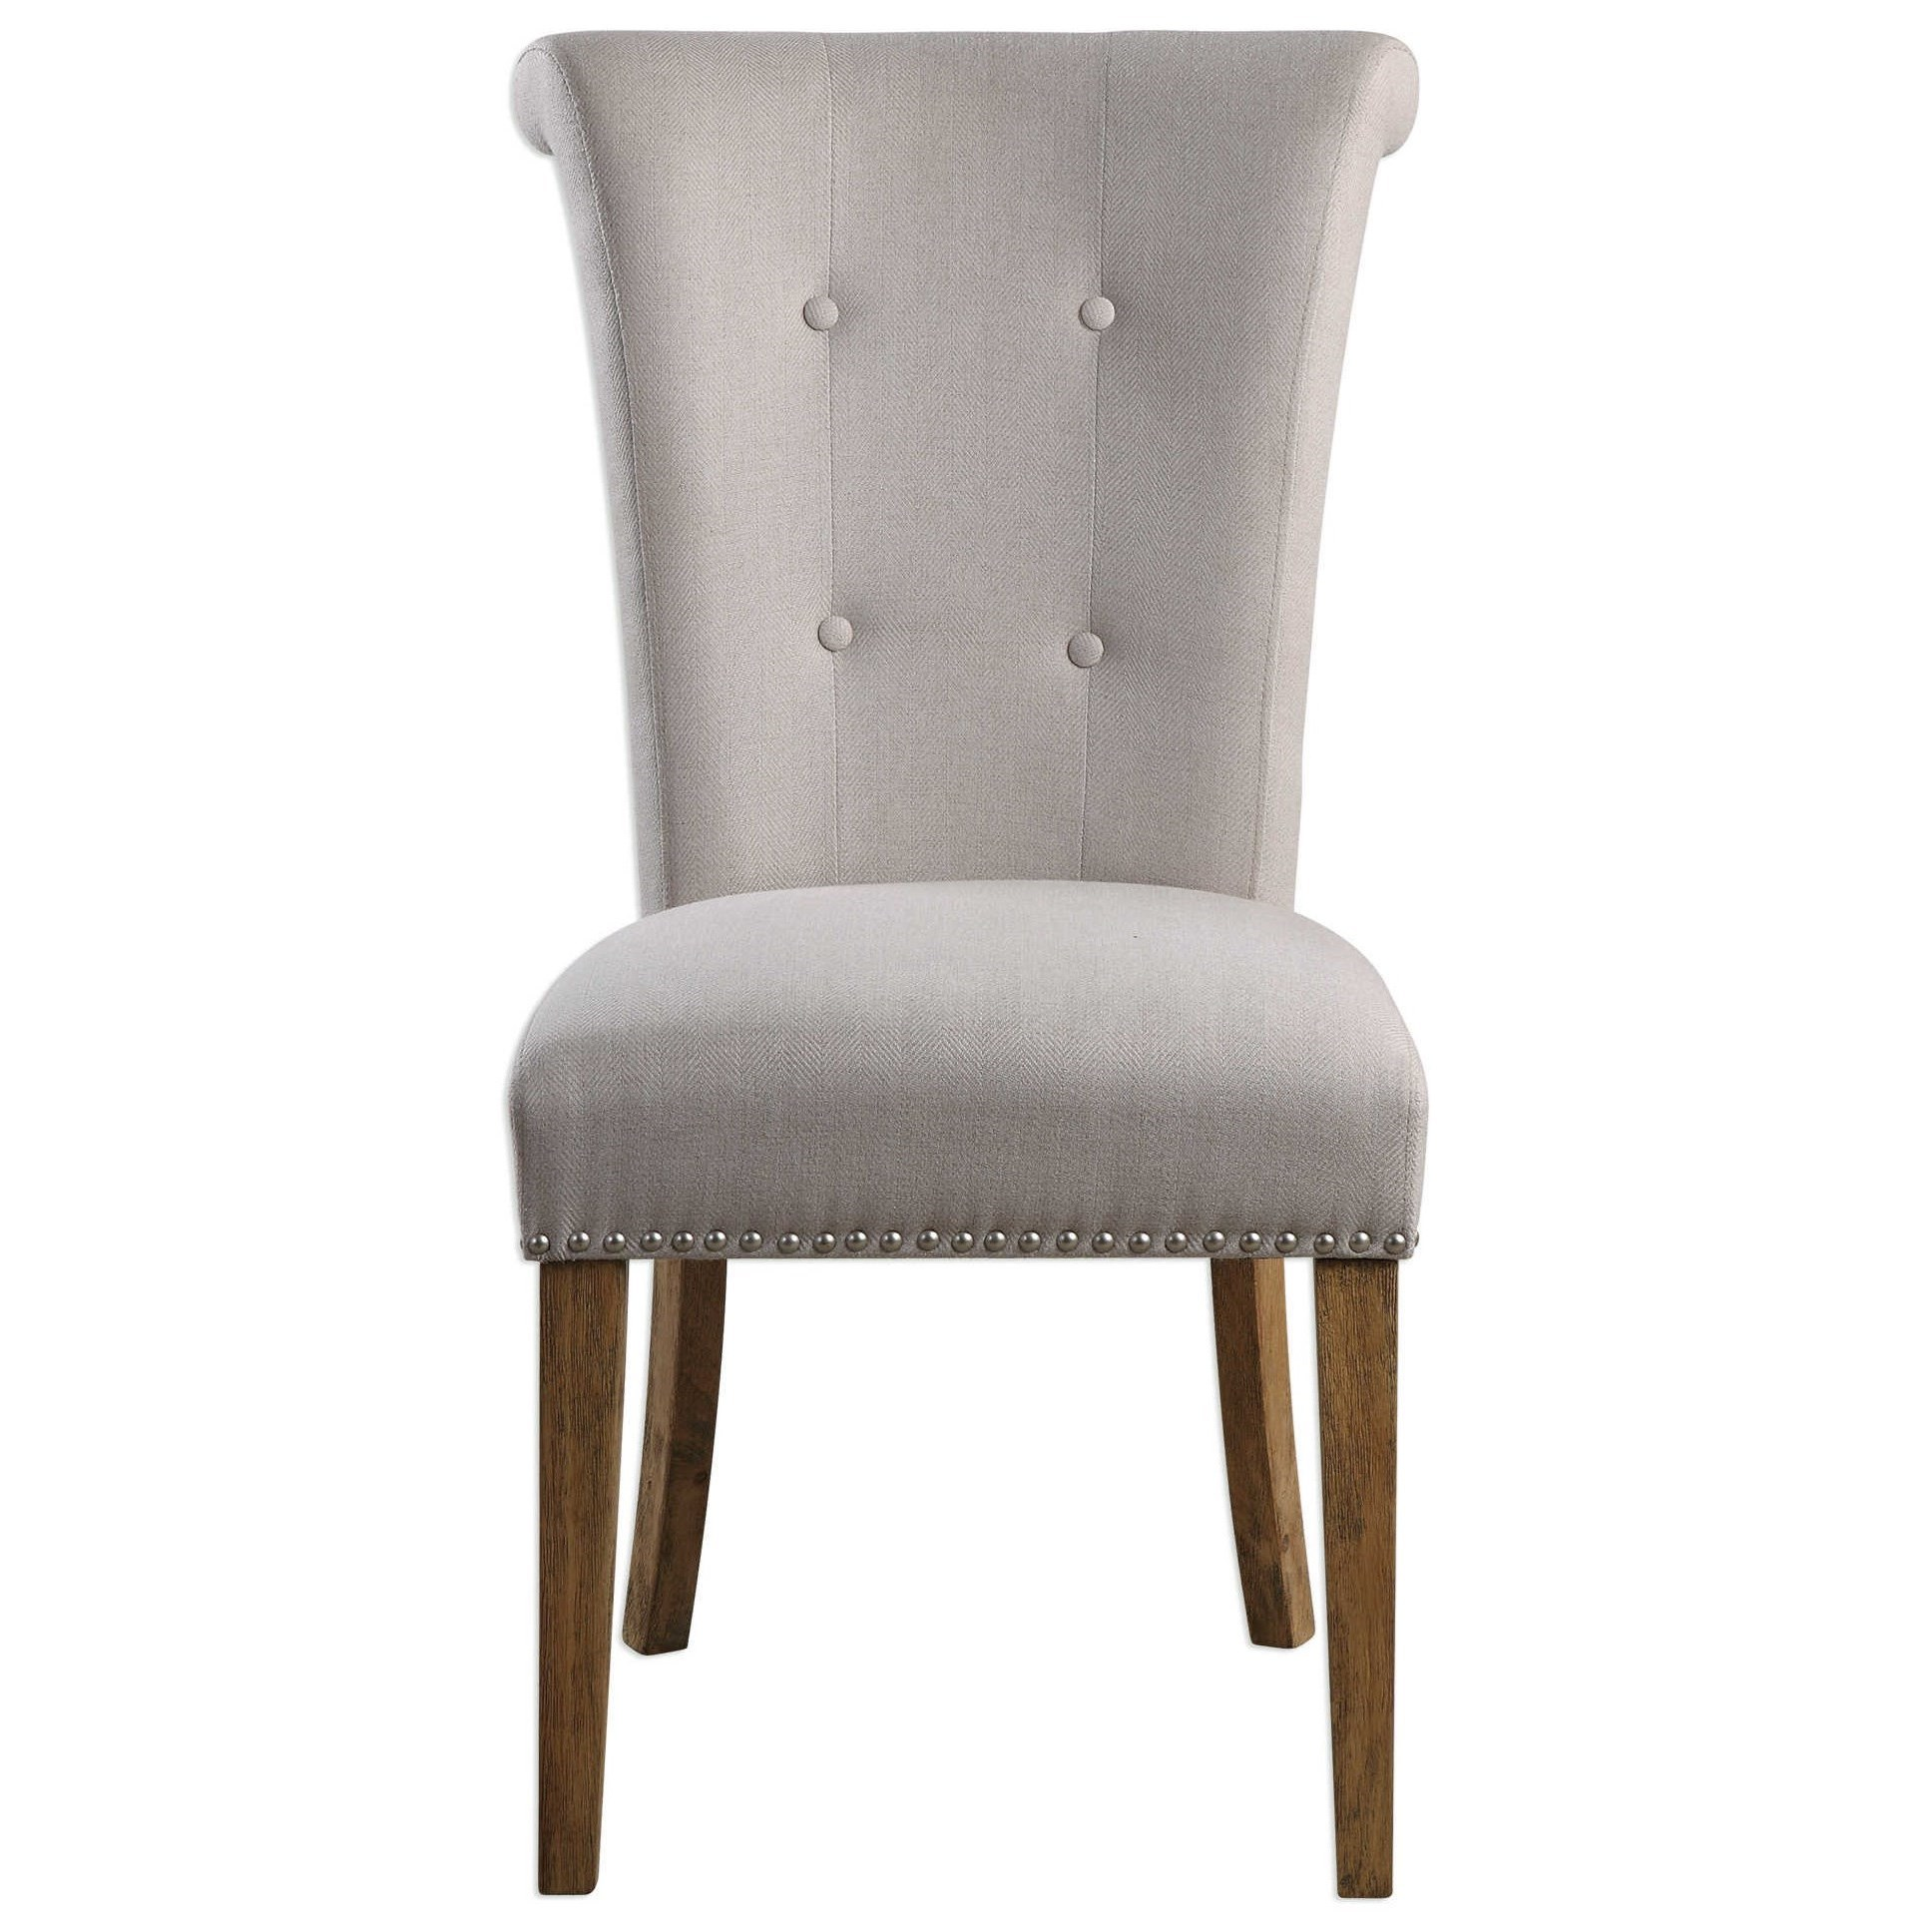 Accent Furniture Lucasse Oatmeal Dining Chair by Uttermost at Michael Alan Furniture & Design